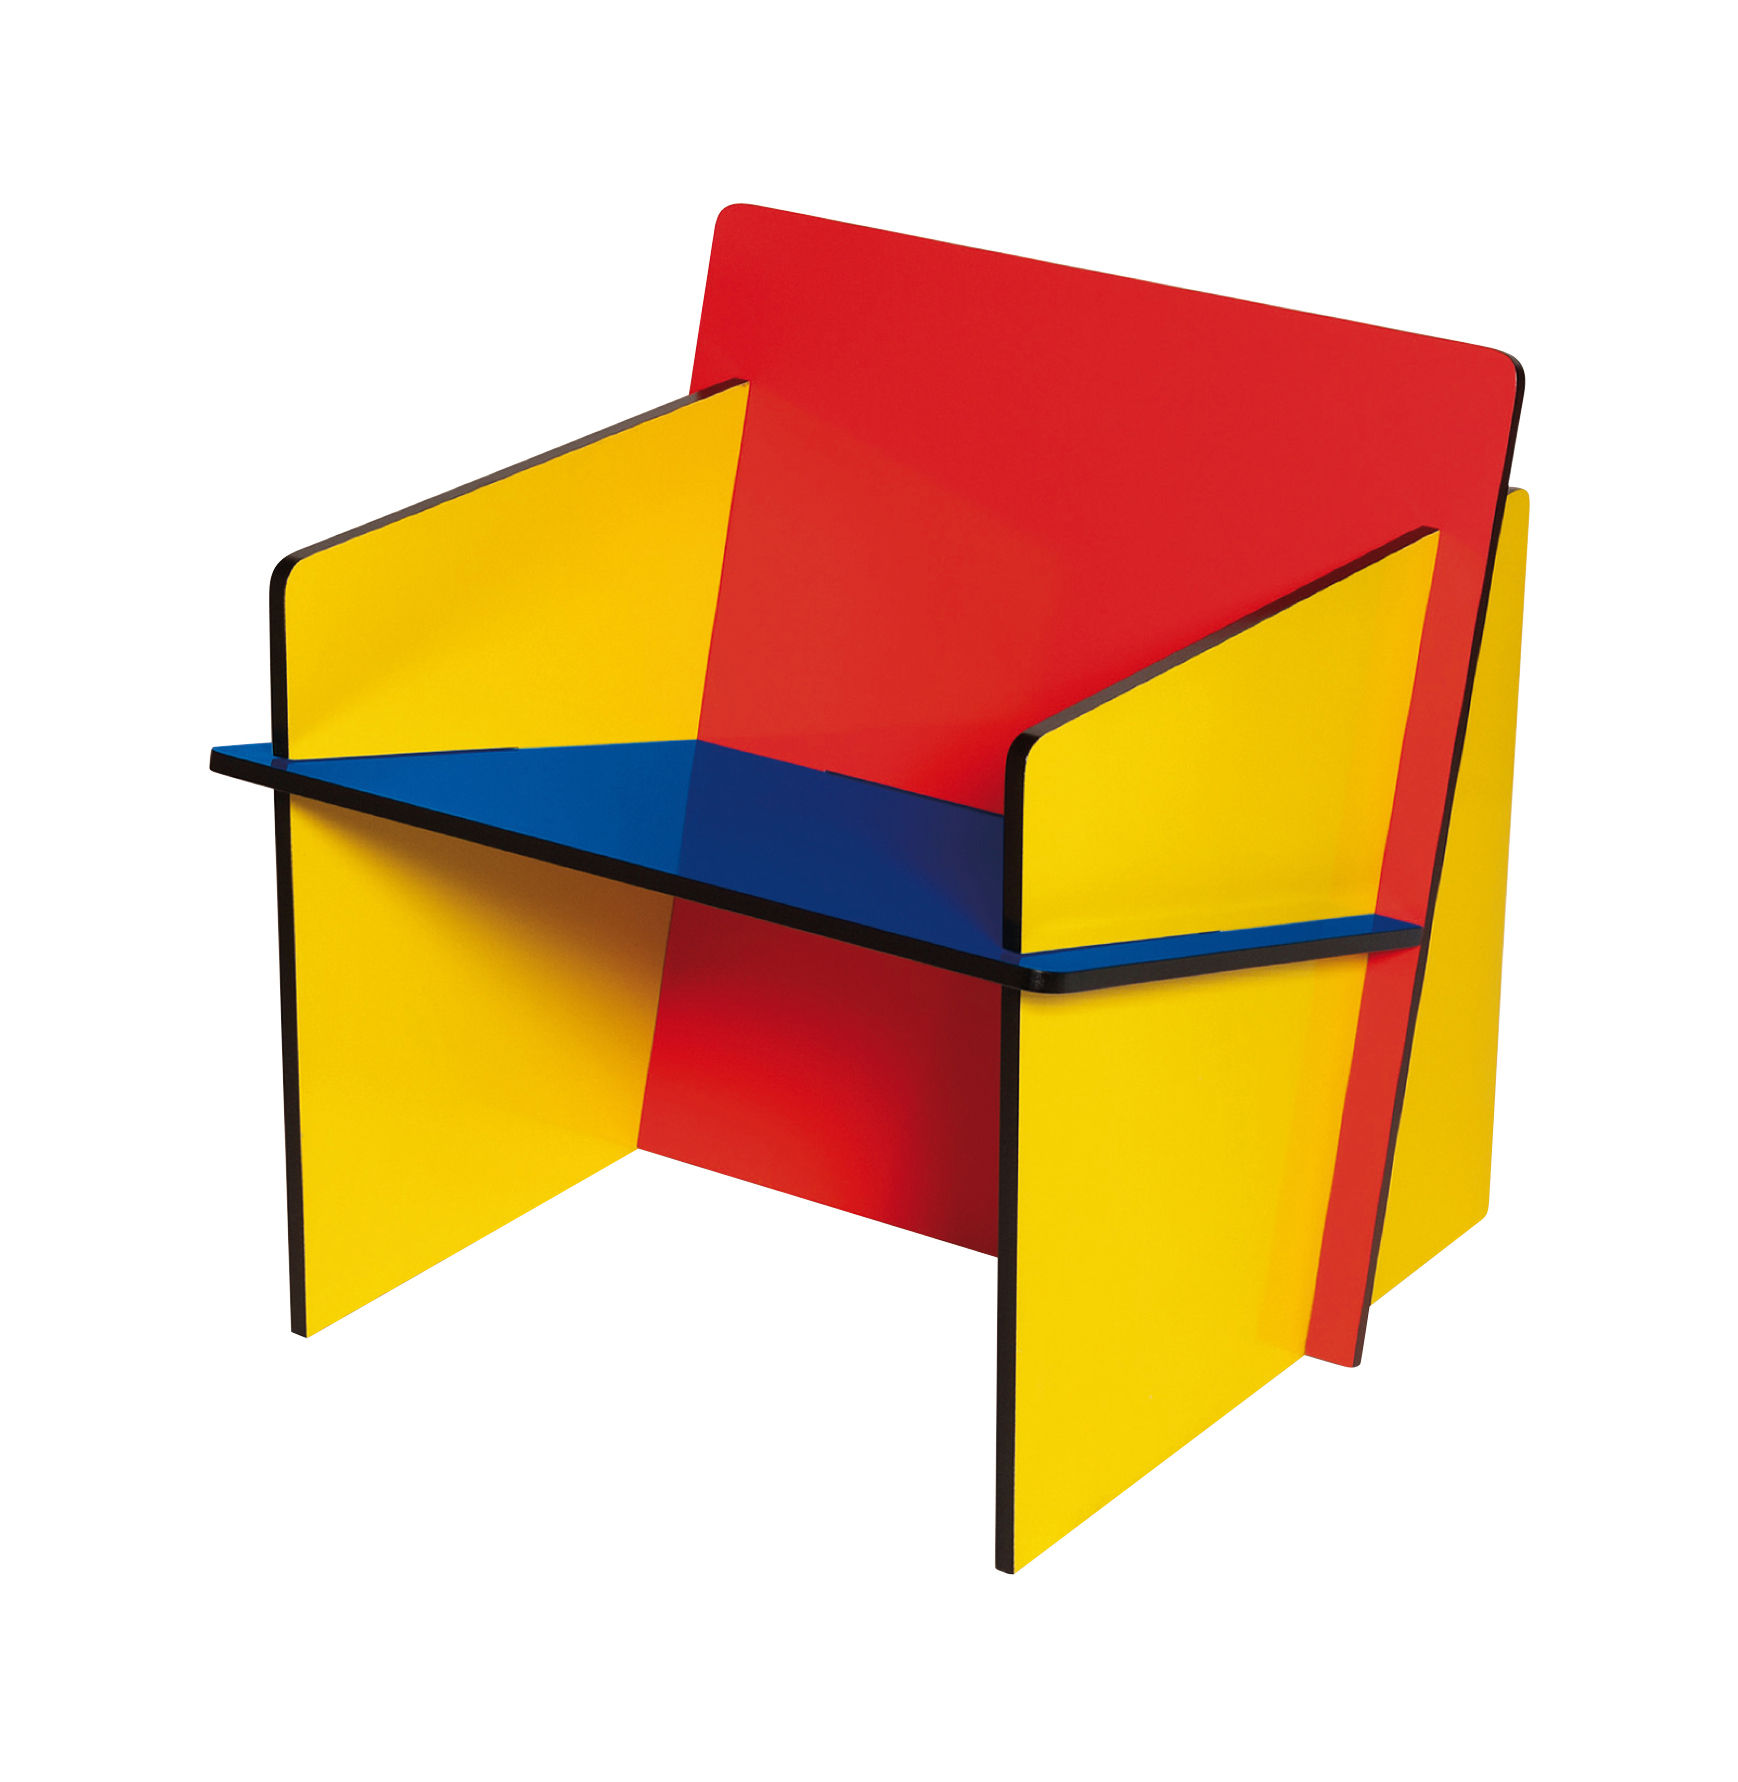 Furniture - Kids Furniture - Bauchair Children armchair by Seletti - Red, blue and yellow - MDF